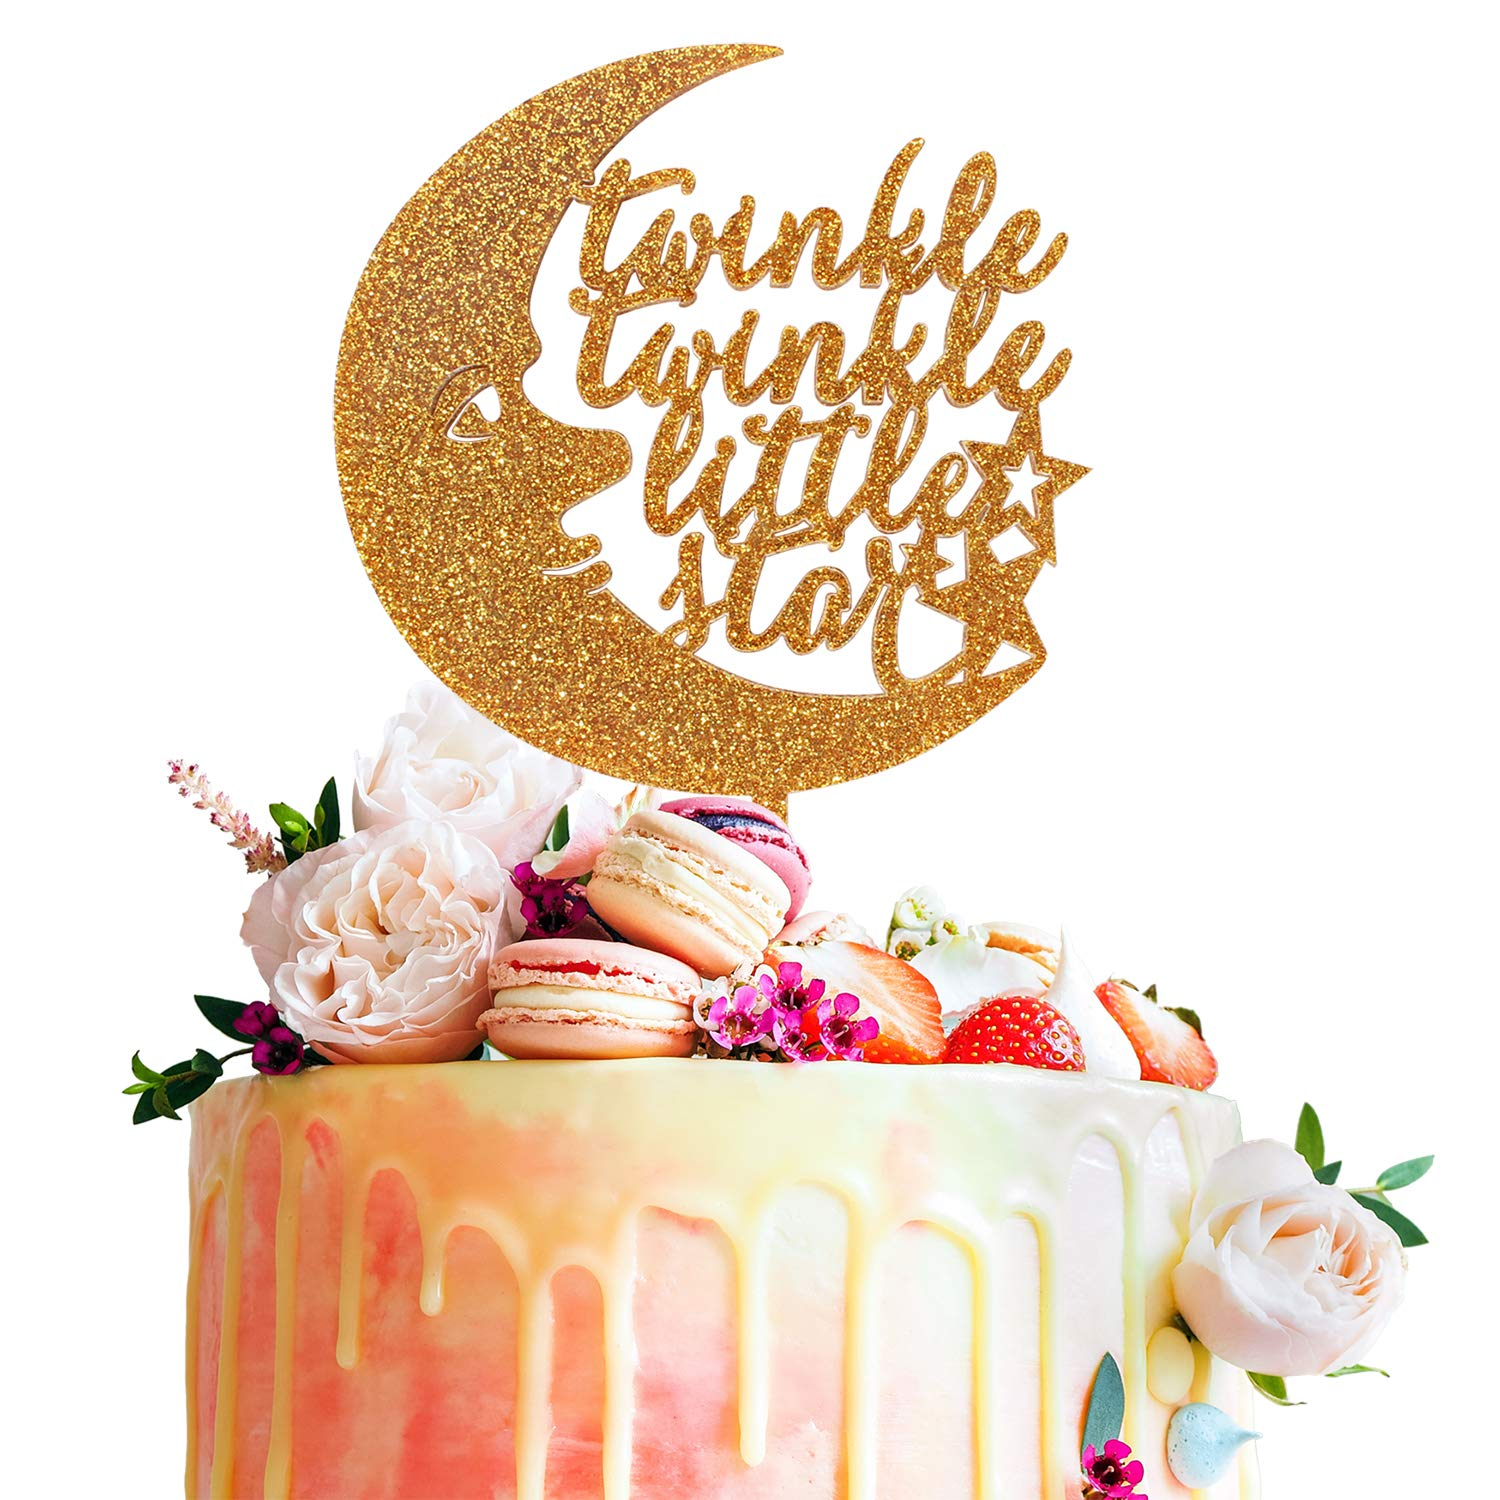 Twinkle Twinkle Little Star Gold Glitter Acrylic Cake Topper Baby Shower First Year First Month Kids Birthday Party Decoration.